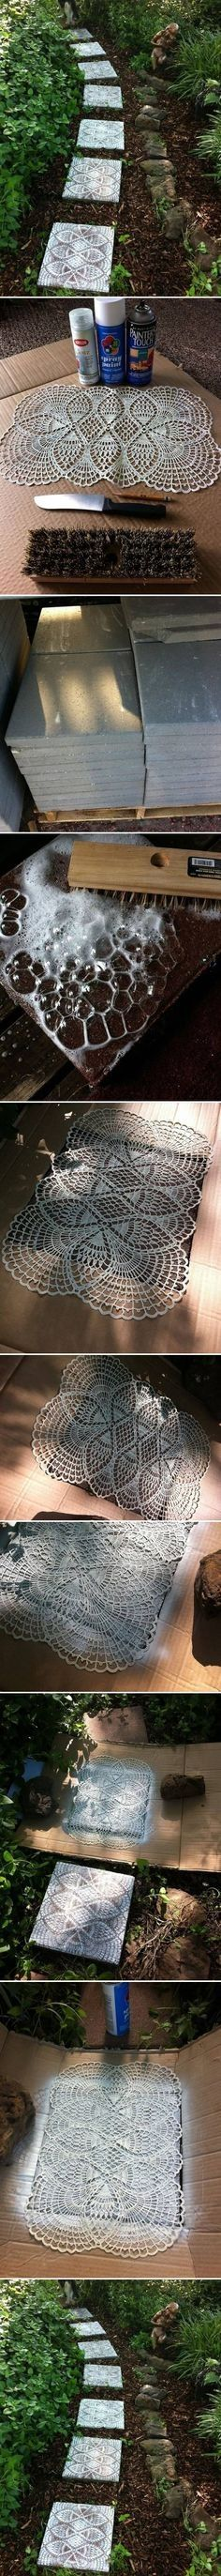 DIY Lace Like Stepping Stones - diy craft crafts easy crafts (follow the pictures step-by-step)